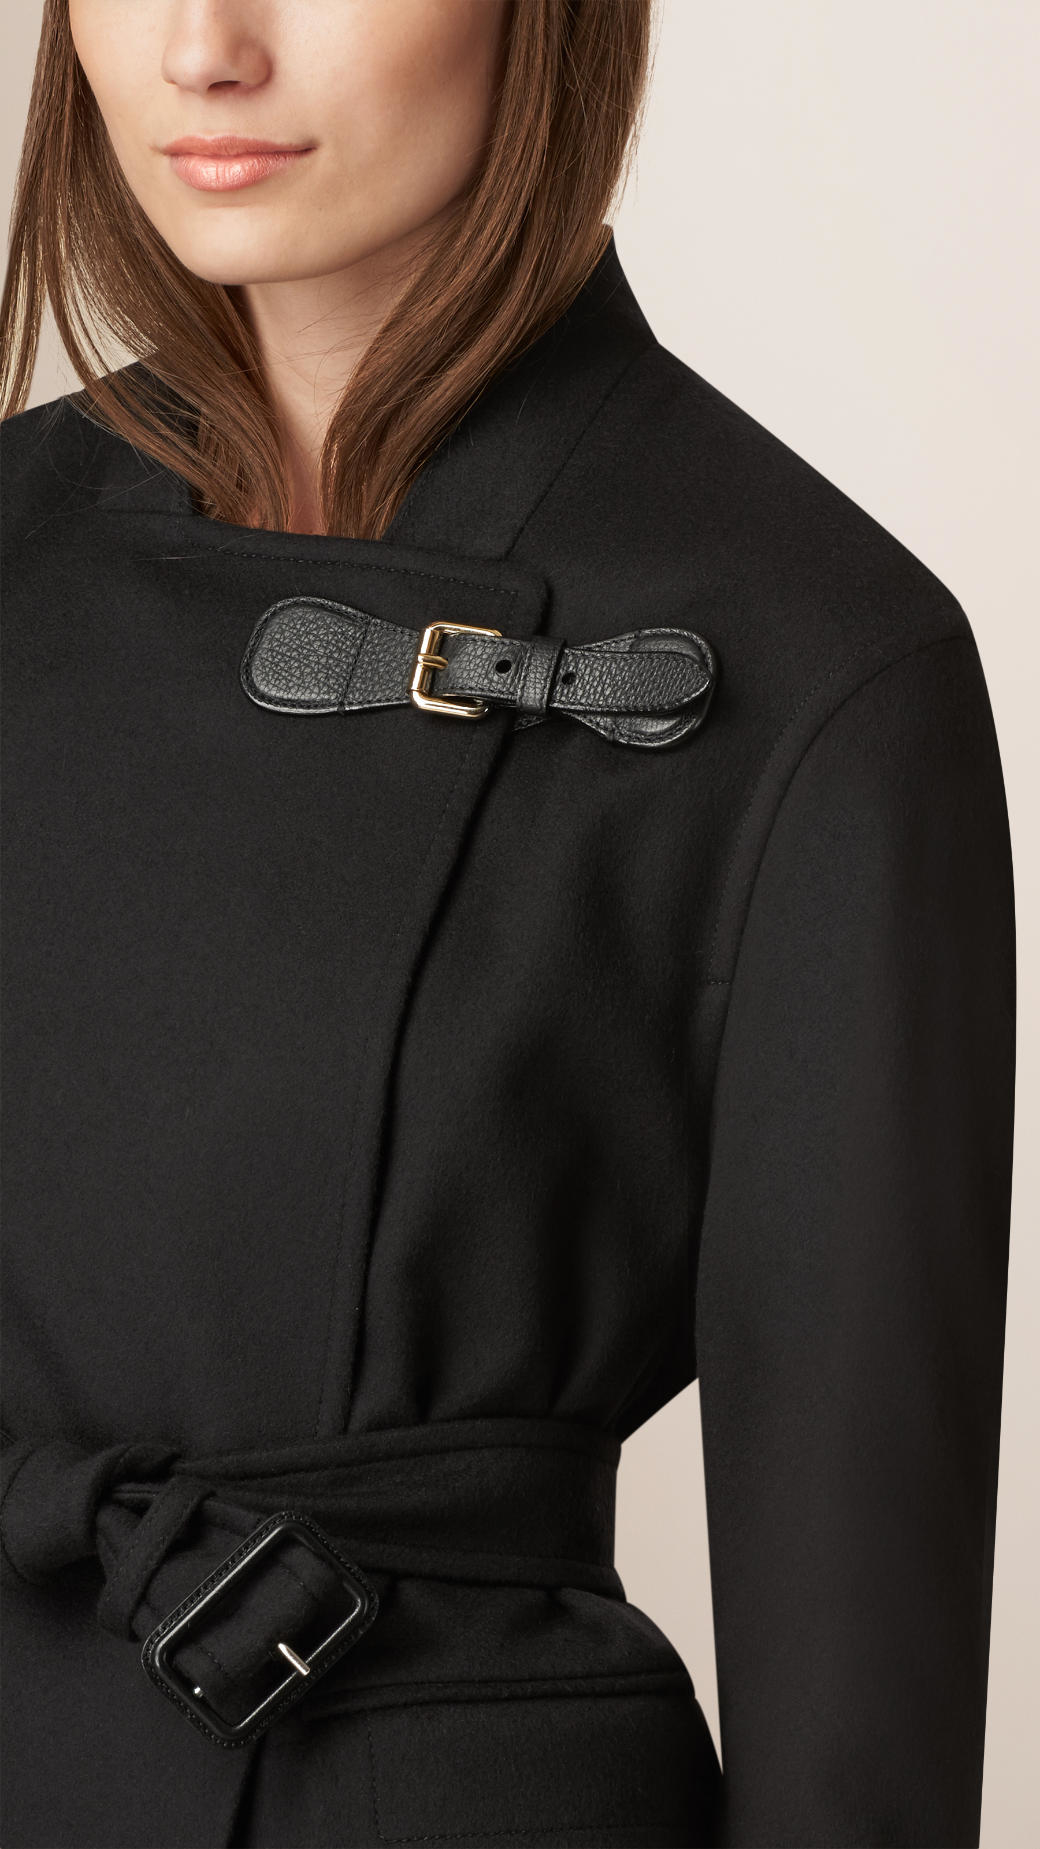 Burberry Cashmere Wrap Coat in Black | Lyst